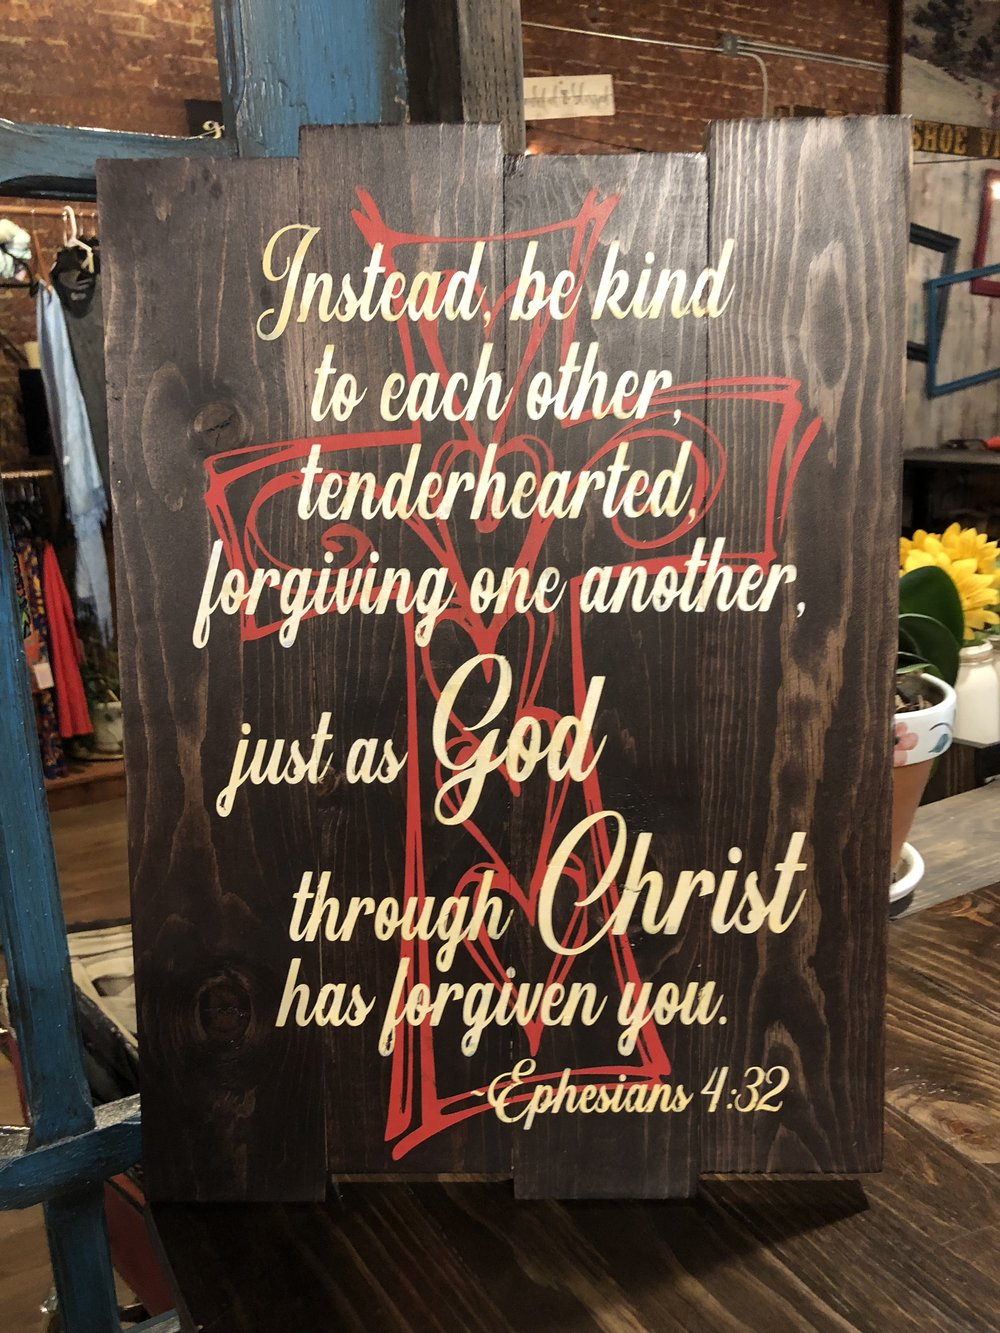 Instead be kind to one another, tenderhearted..